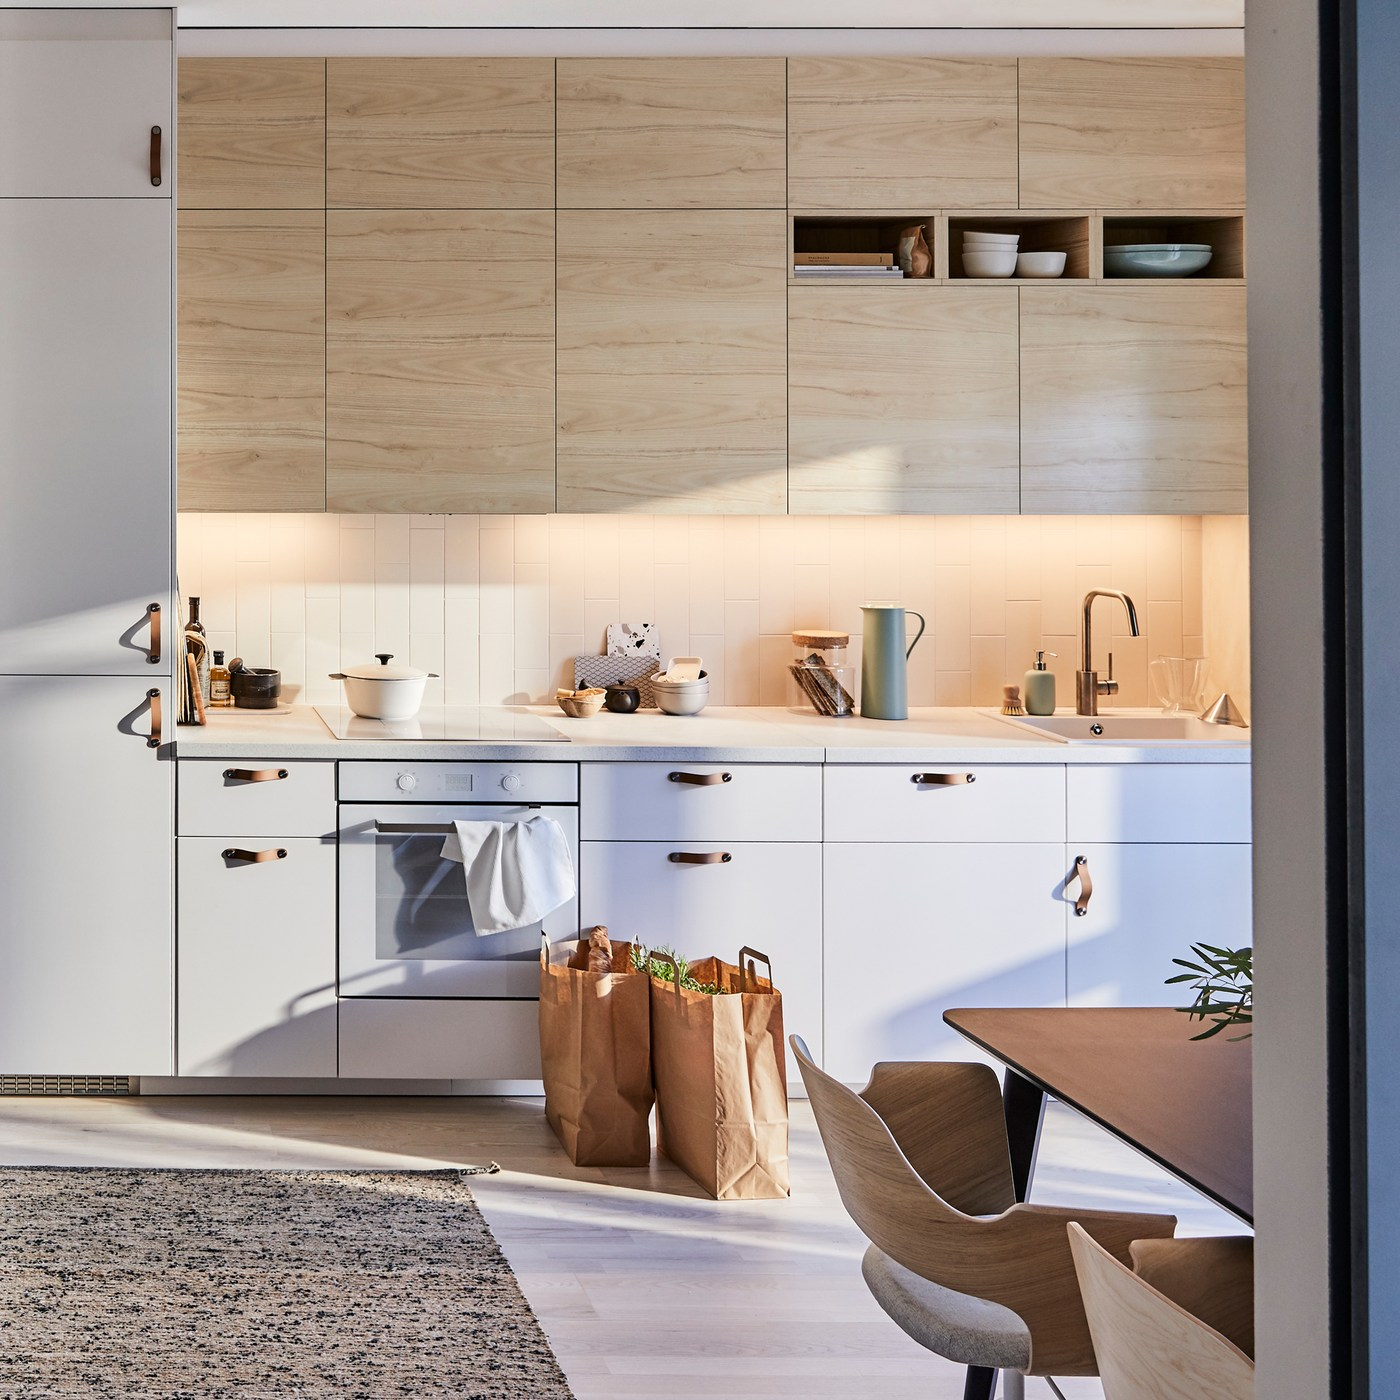 Where cooking is about slowing down and relax - IKEA